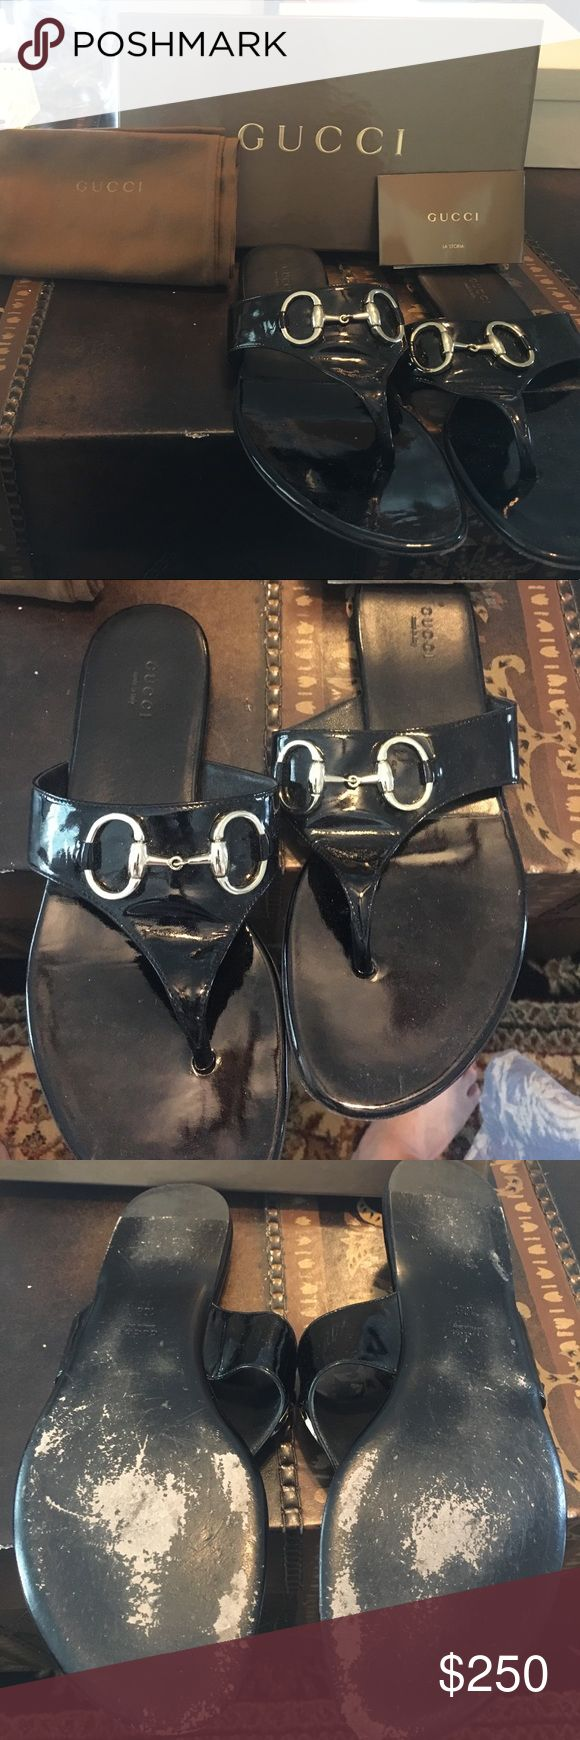 Gucci Patent Lamb black sandals Black Gucci patent sandals with classic horse bit detail. Size 10. Purchased from Saks. Soles of shoes are slightly worn, please see pictures. More pictures available upon request, price is negotiable. Gucci Shoes Sandals